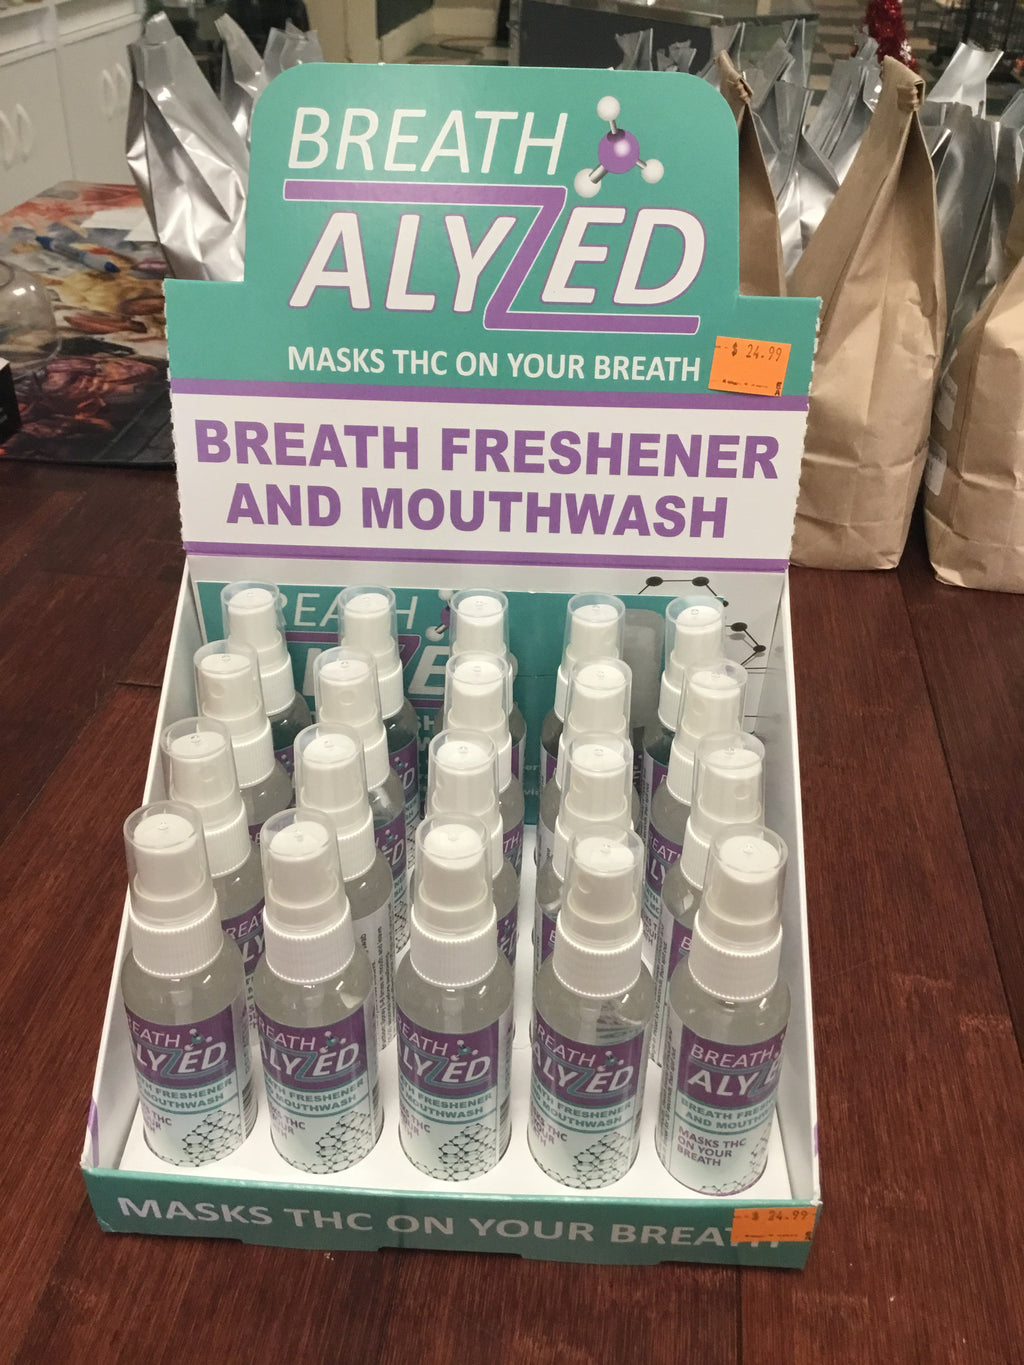 Breathalyzed Mouthwash